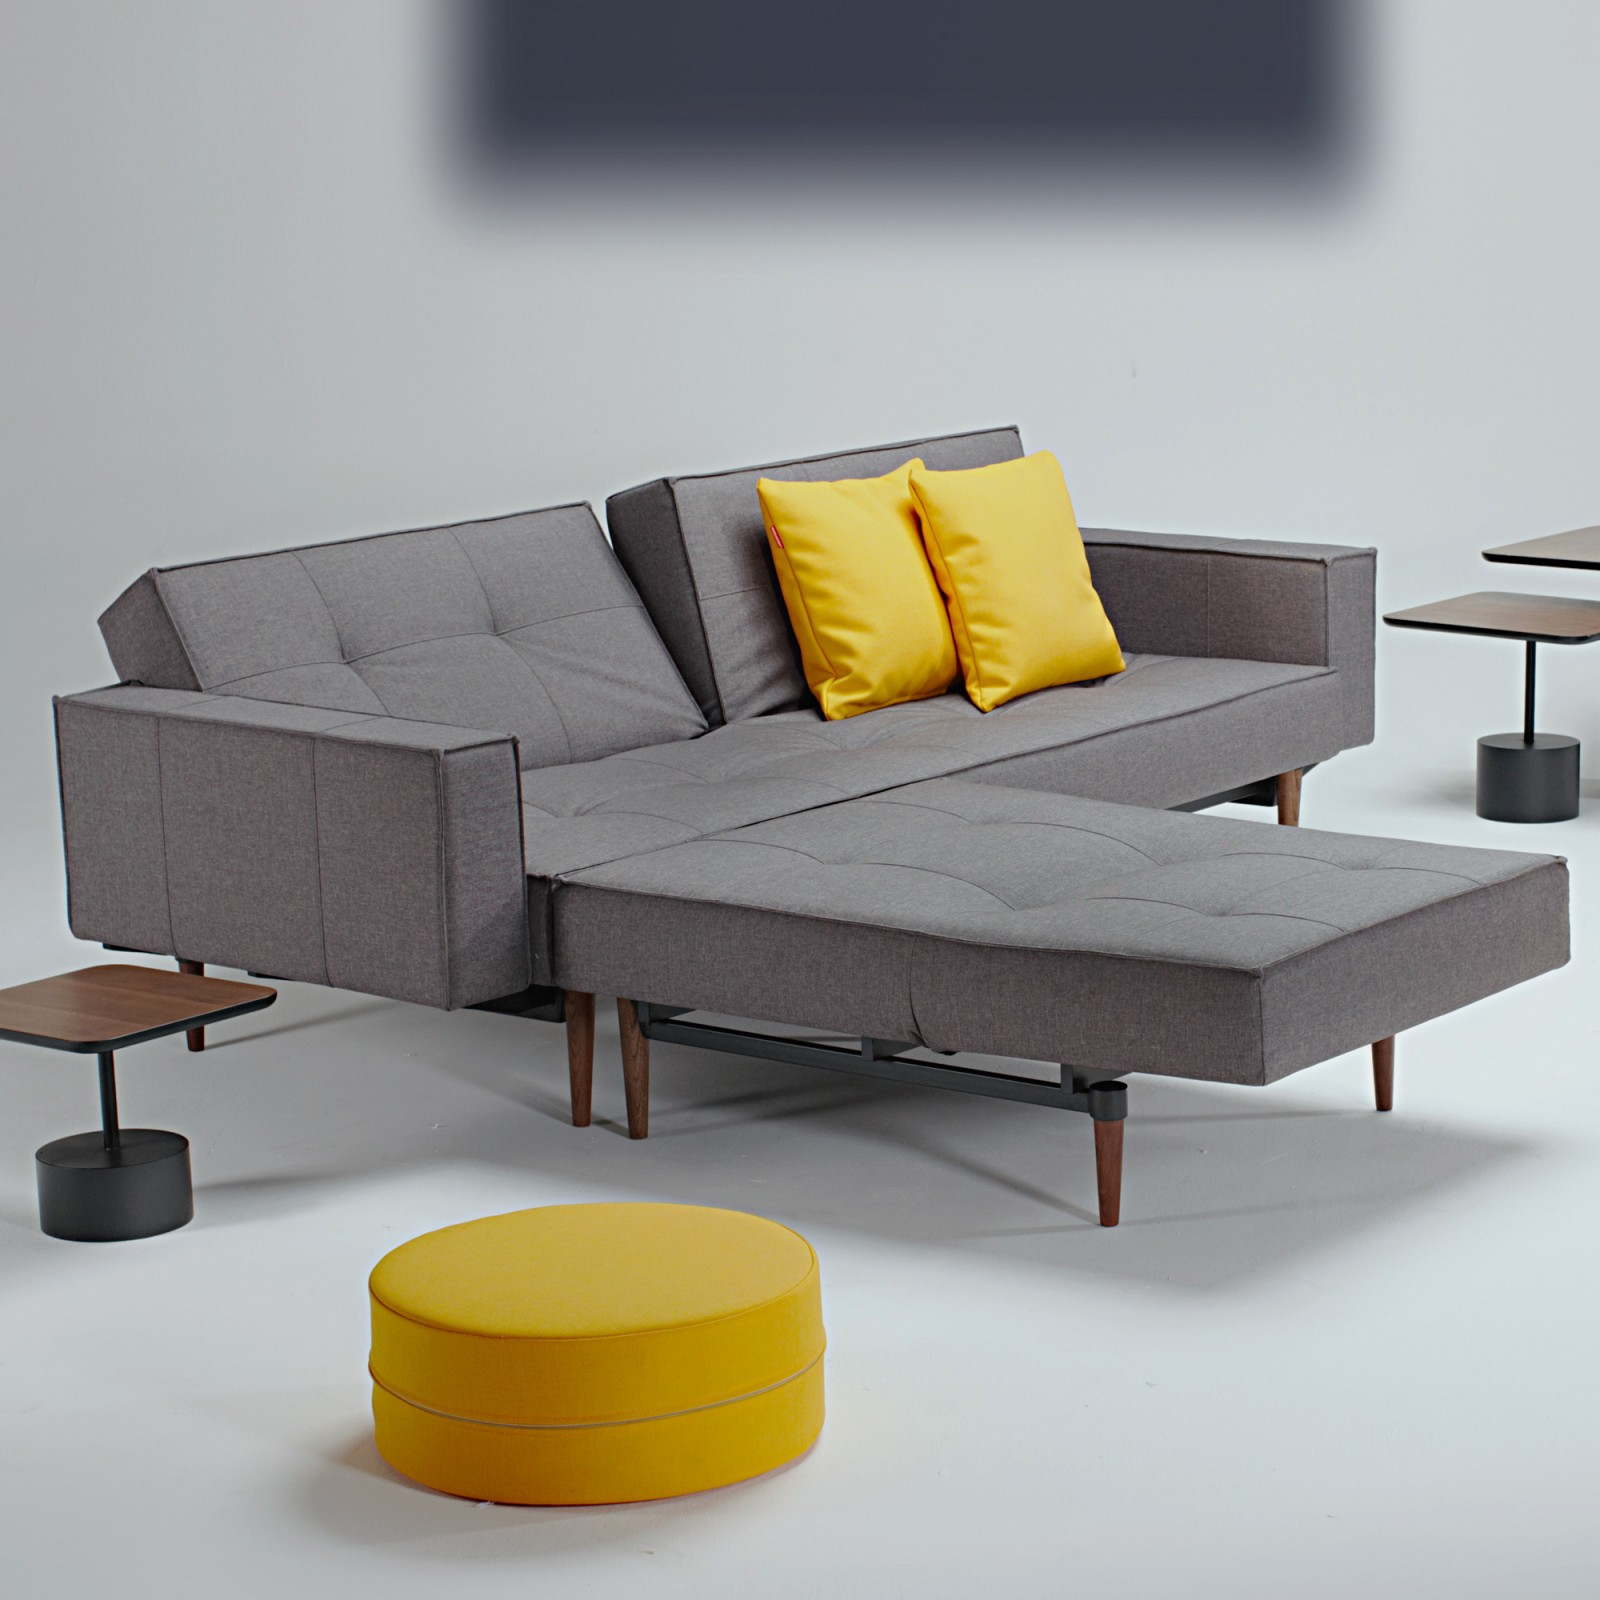 innovation-splitback-wood-sofa-bed-w-armrests-w2350-h790-d-900mm-dark-elm-dark-grey--inn-94-7410020216-3-2_4a